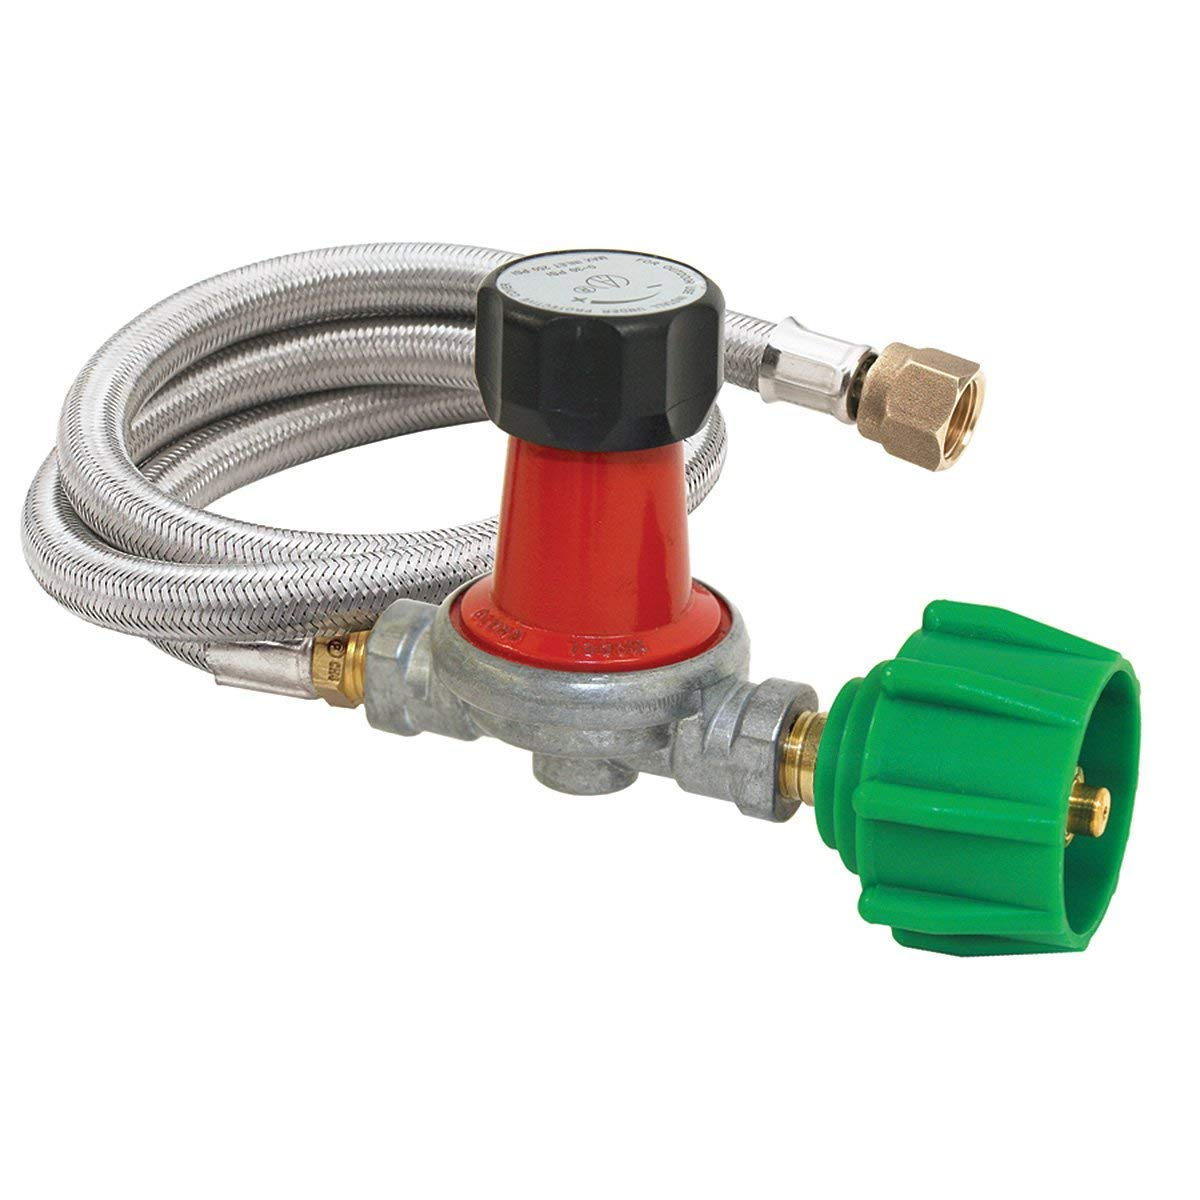 Amazon.com : Bayou Classic M5HPR-30, 0-30 PSI Adjustable Regulator with  Stainless Braided Hose : Grill Parts : Garden & Outdoor